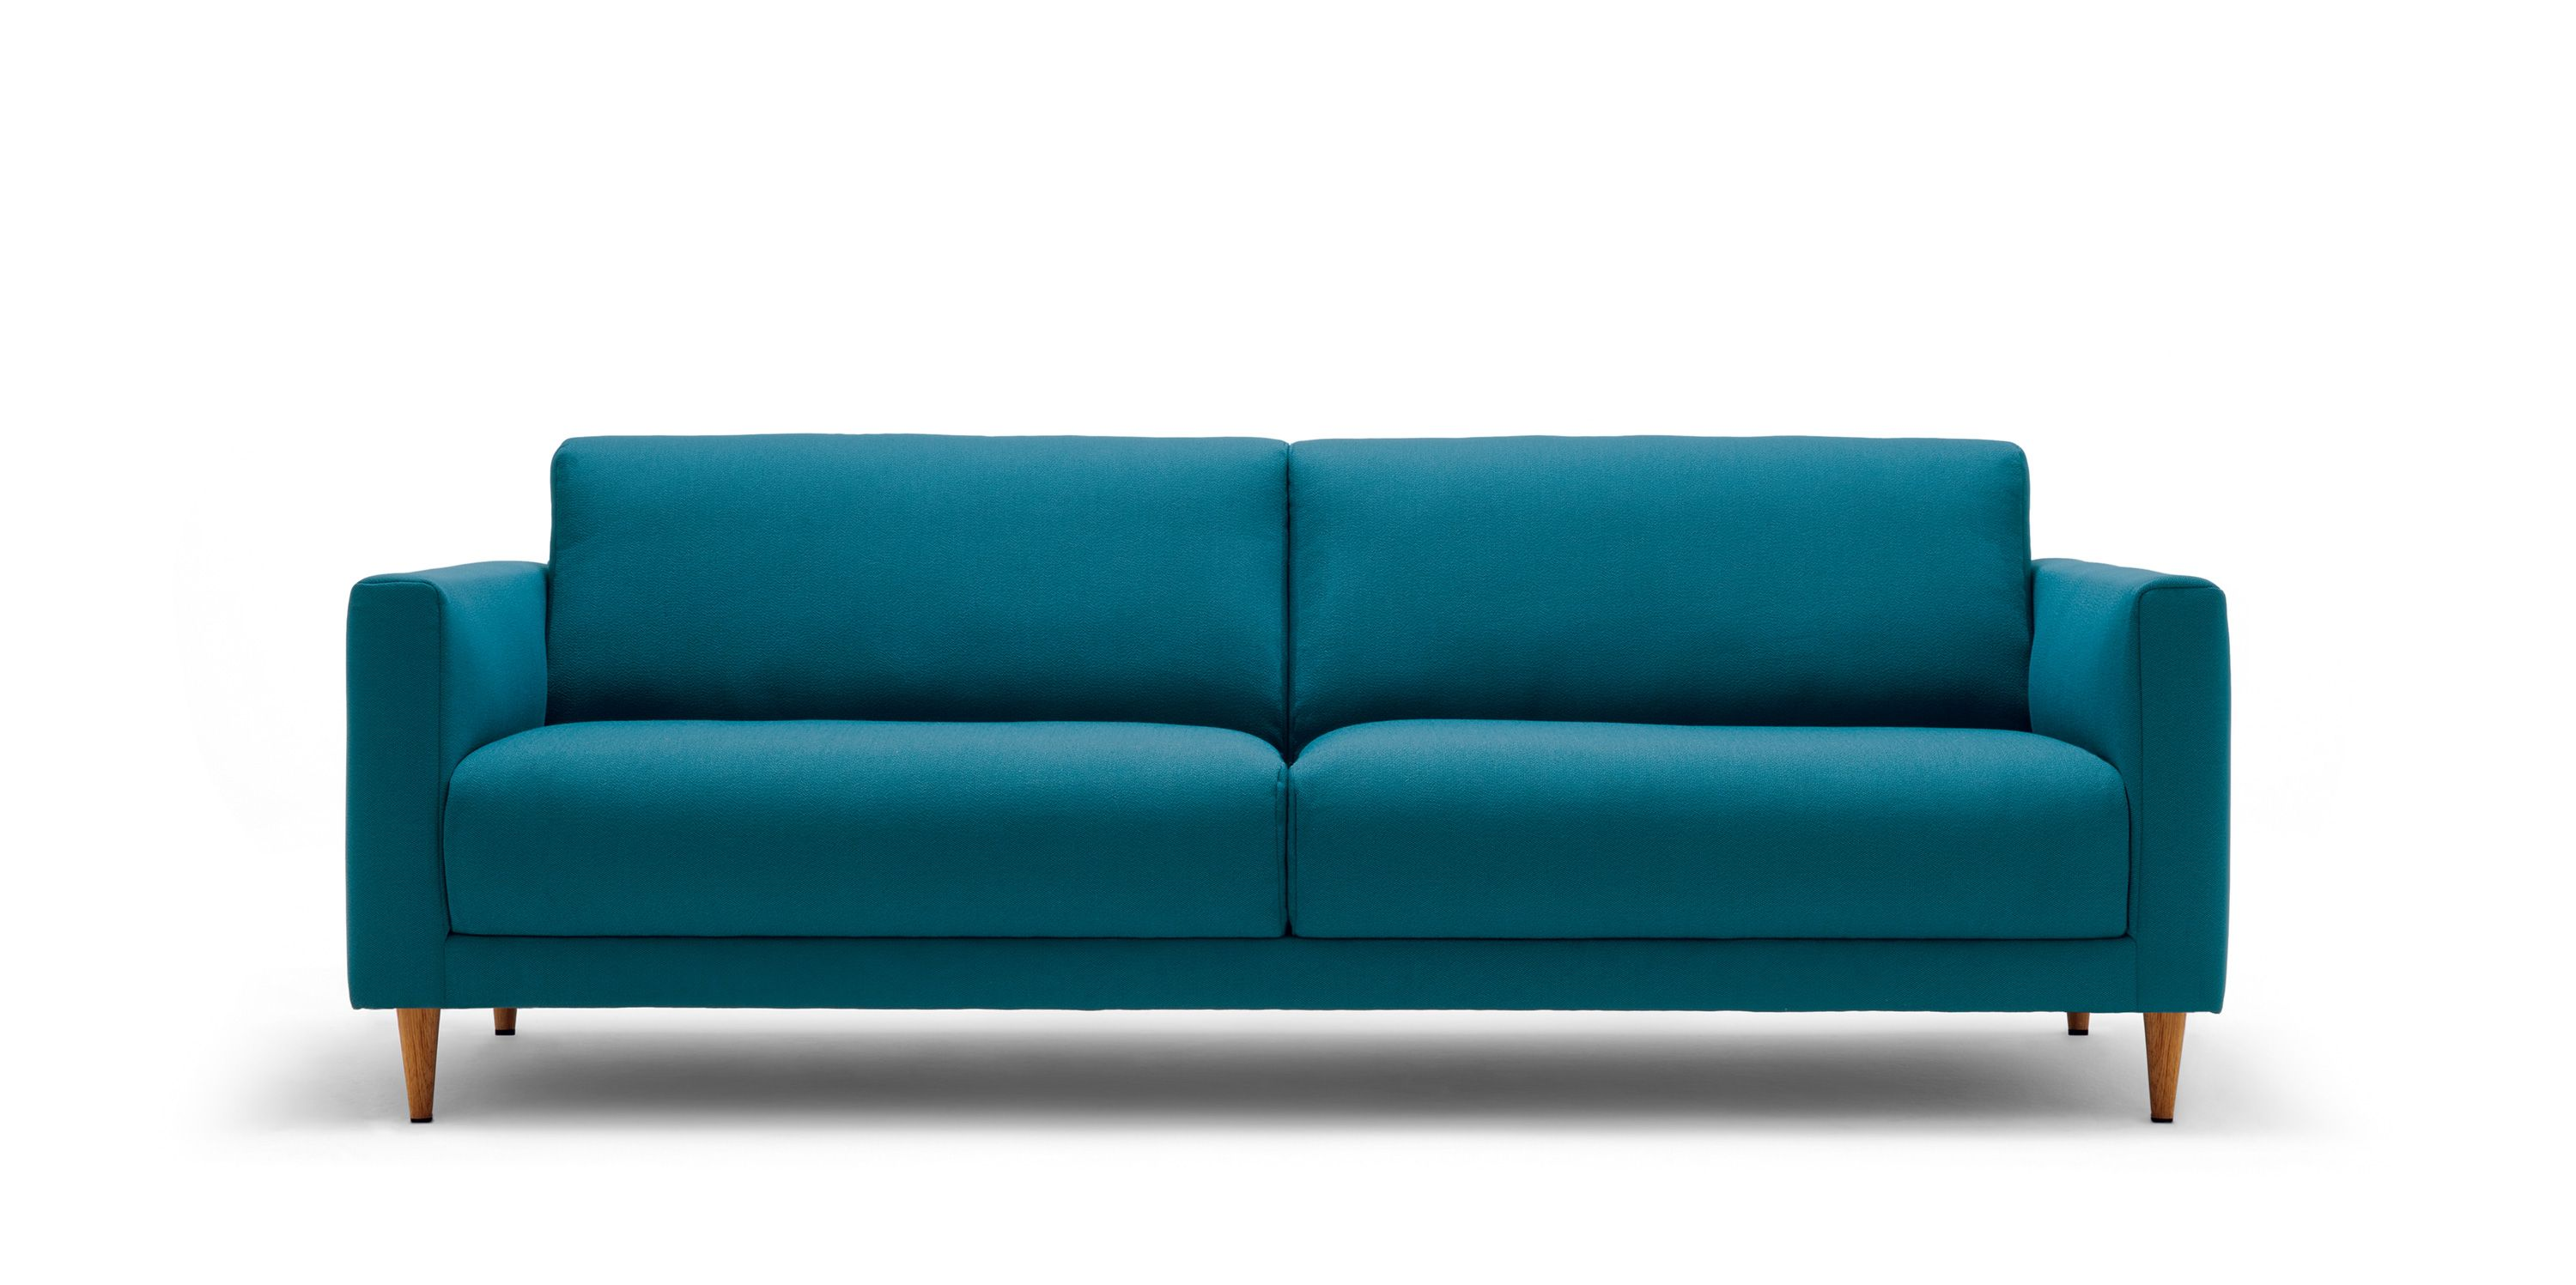 Freistil Sofa Freistil: 141 | Freistil Rolf Benz, Freistil, Furniture